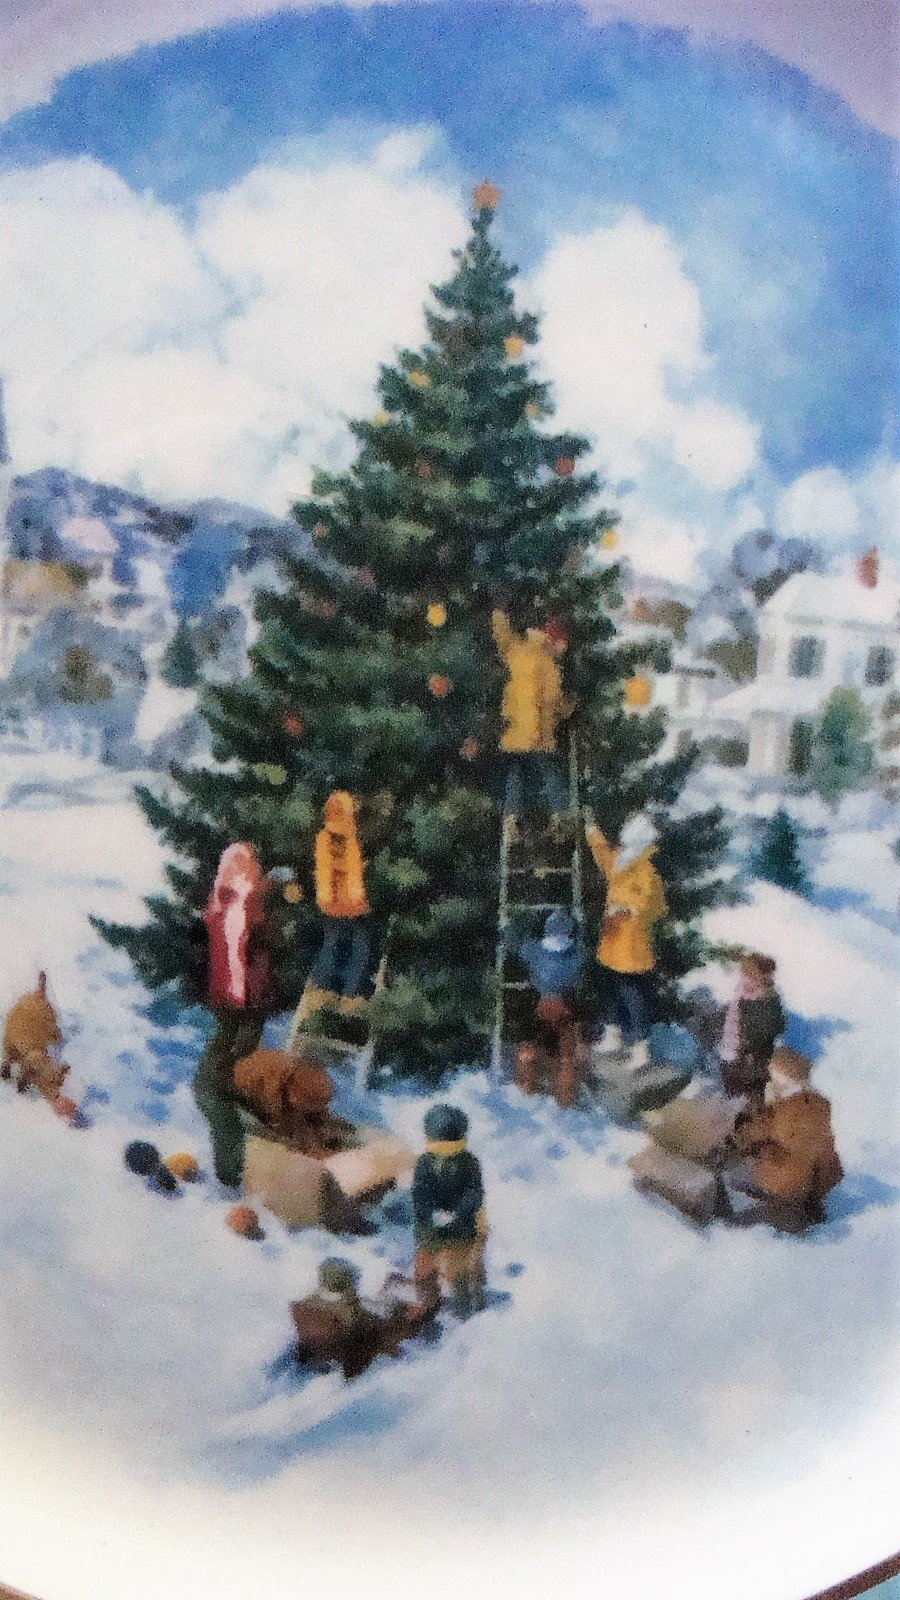 Avon Enoch Wedgwood Christmas 1978 Collectible Plate Trimming the Tree, no box image 3